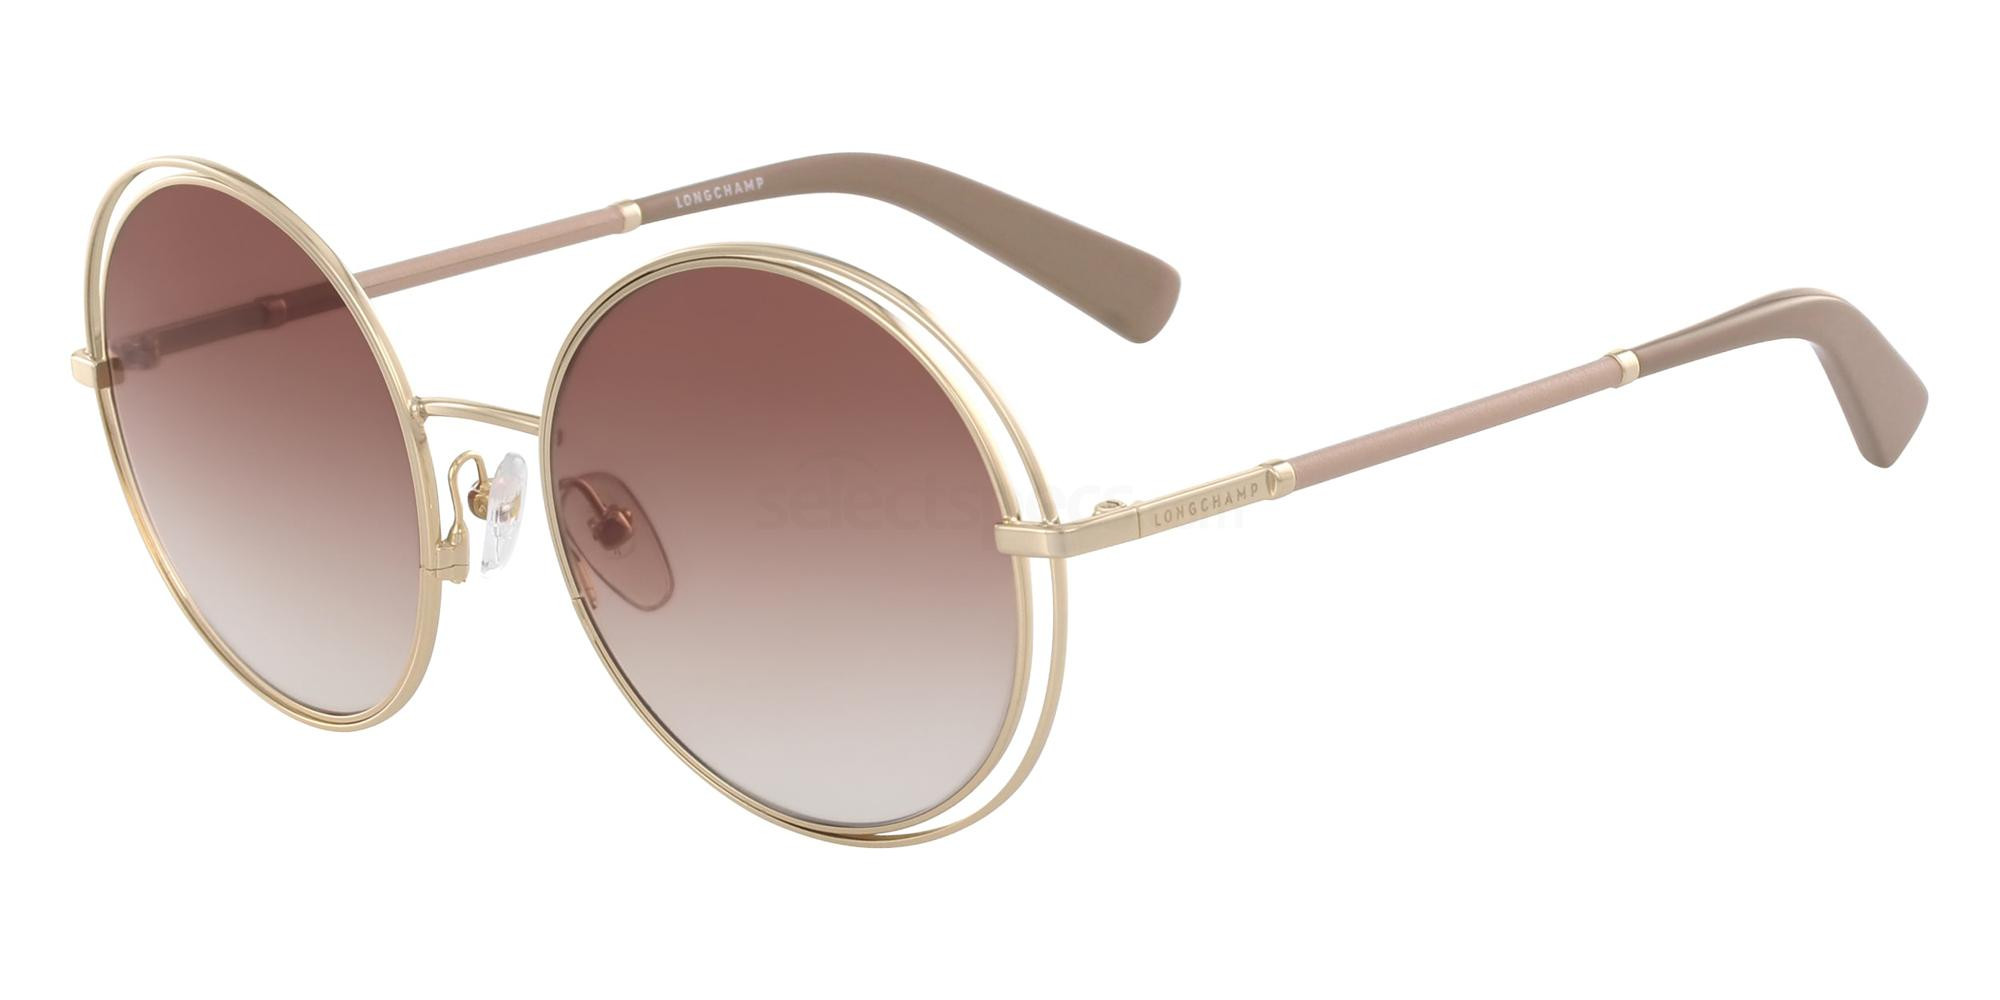 716 LO105SL Sunglasses, LONGCHAMP